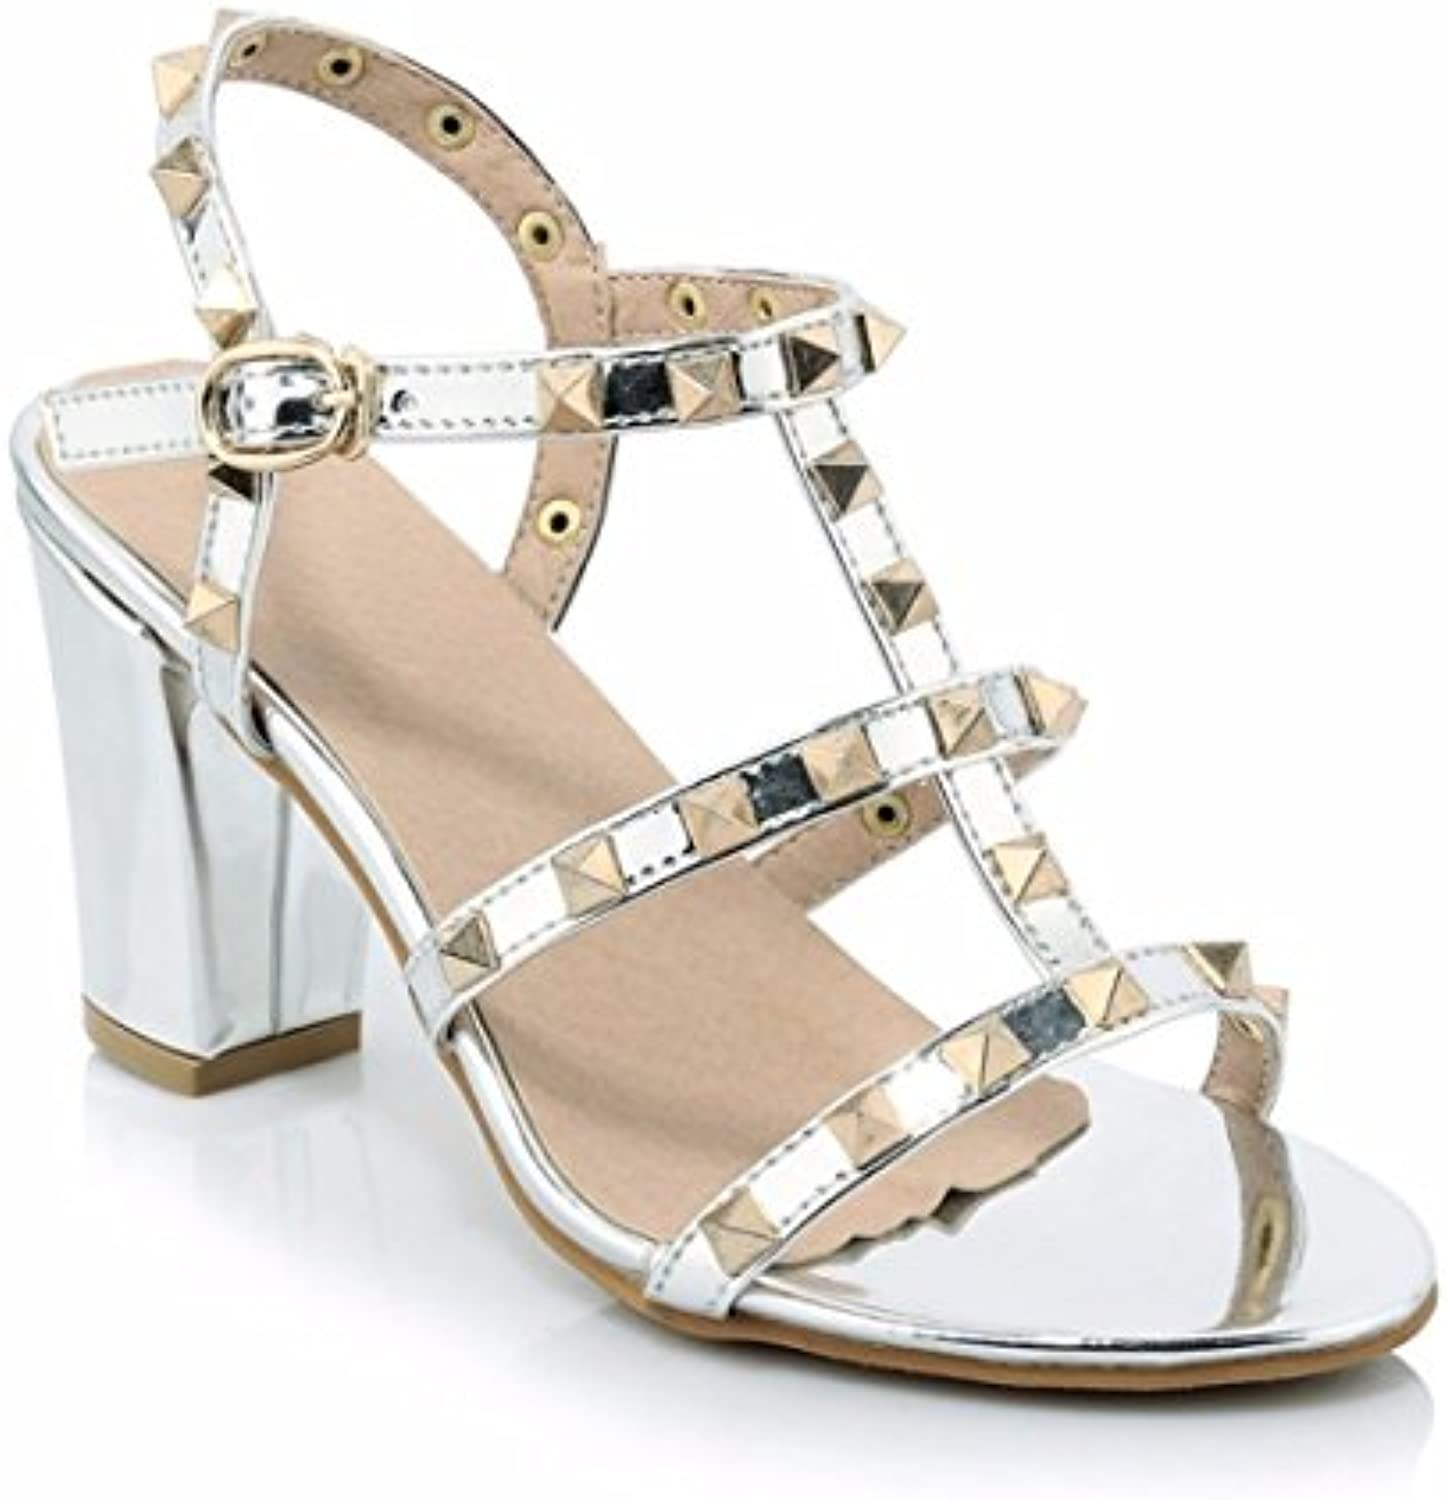 8703963e6694 Women s sandals thick nhta-29517 with high-heeled sandals sandals rivet  sandals strap Parent painted leather sandals B07DRBQ2LC Parent 5f9df1a ...